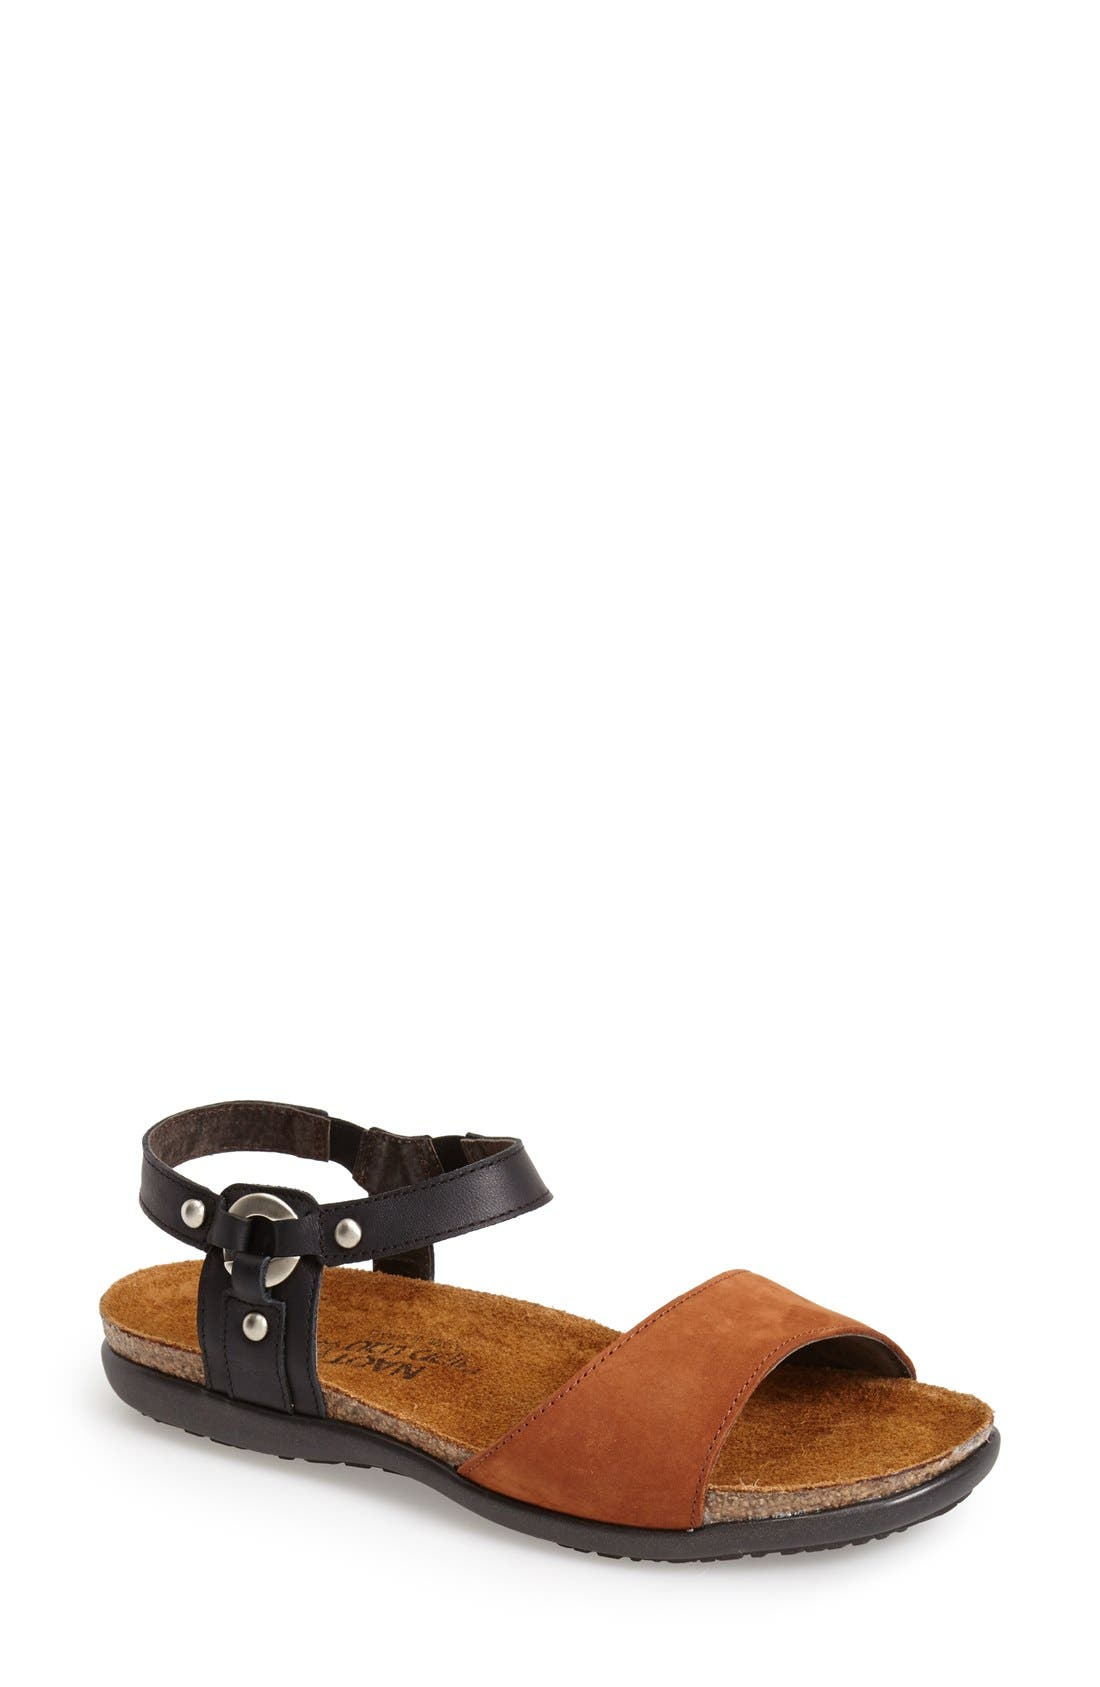 Alternate Image 1 Selected - Naot 'Sabrina' Sandal (Women)